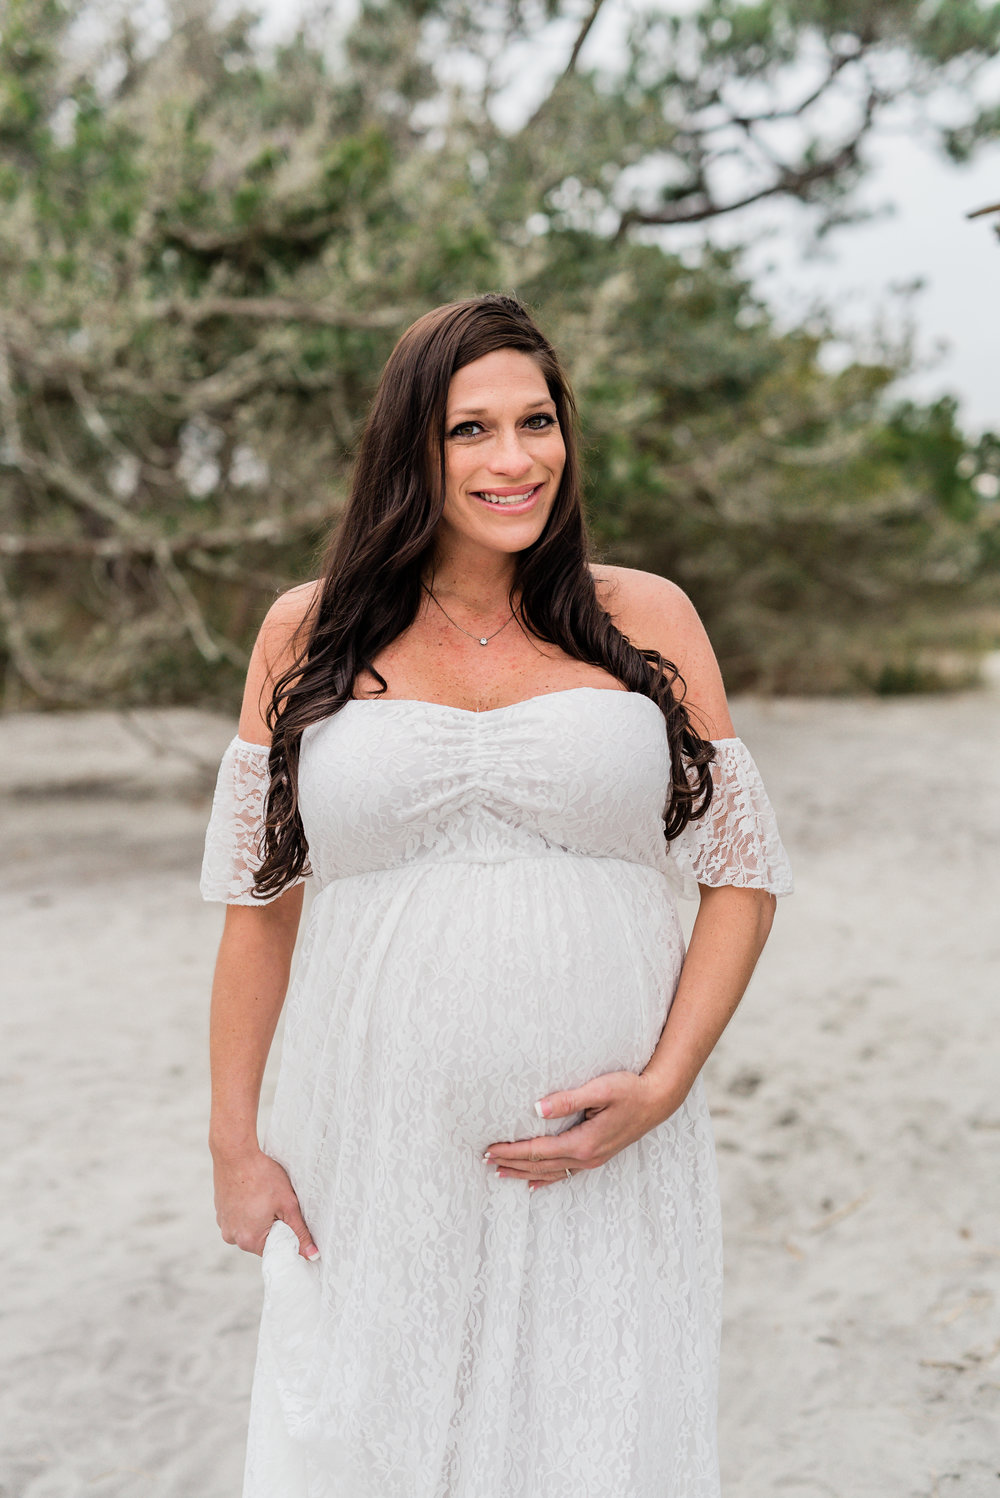 Folly-Beach-Maternity-Photographer-FSP_1523 copy.jpg